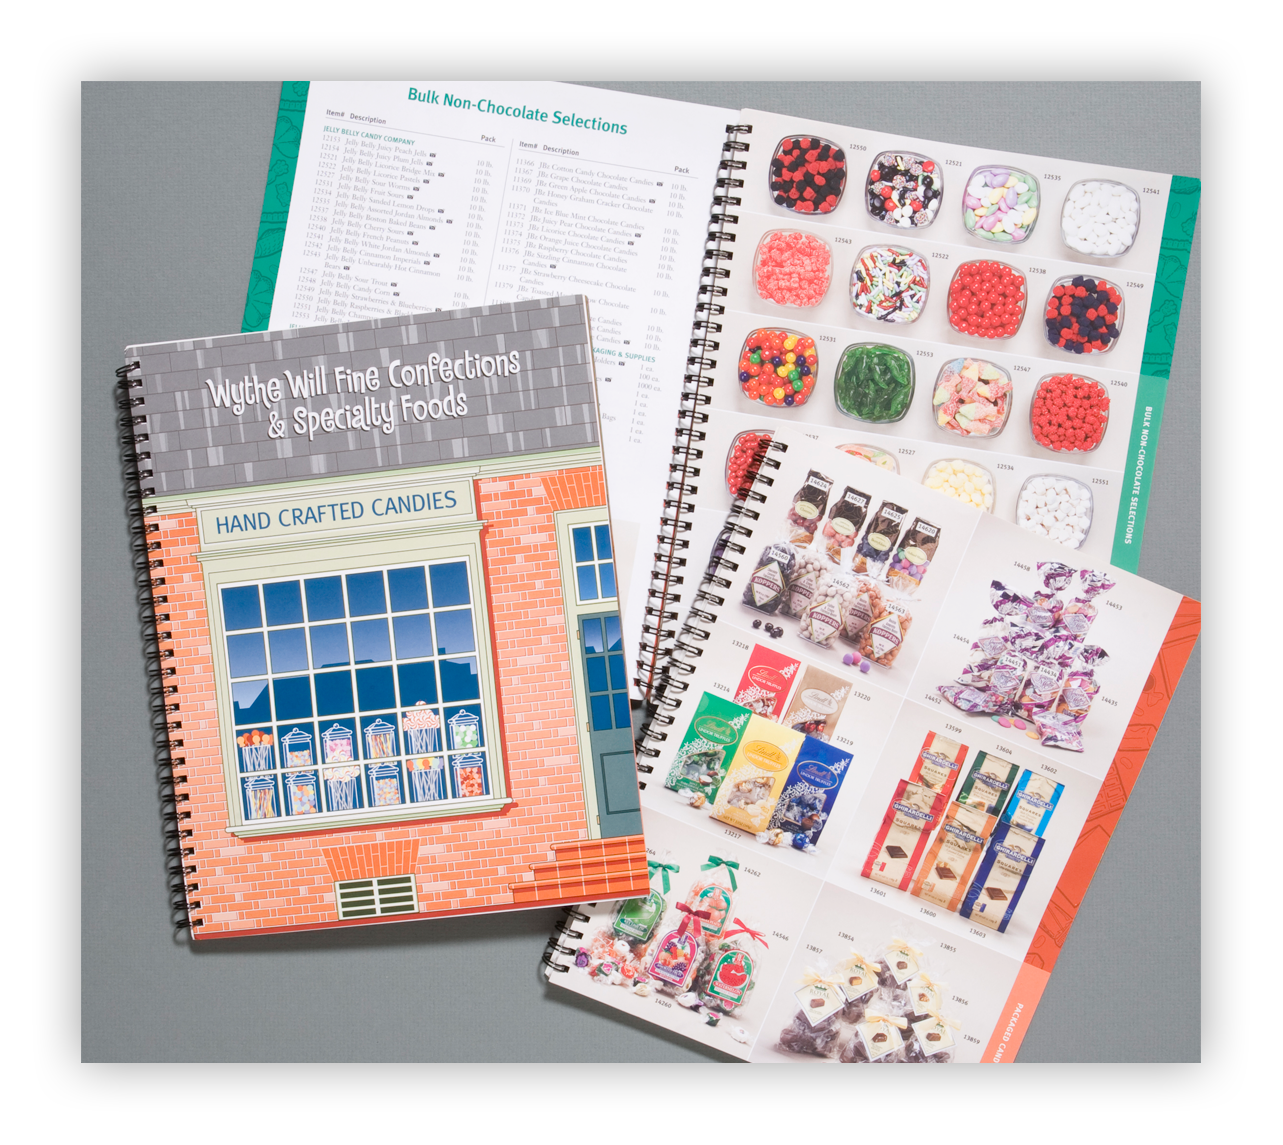 First-Source-Specialty-Food-and-Confections-Catalog-portfolio-2